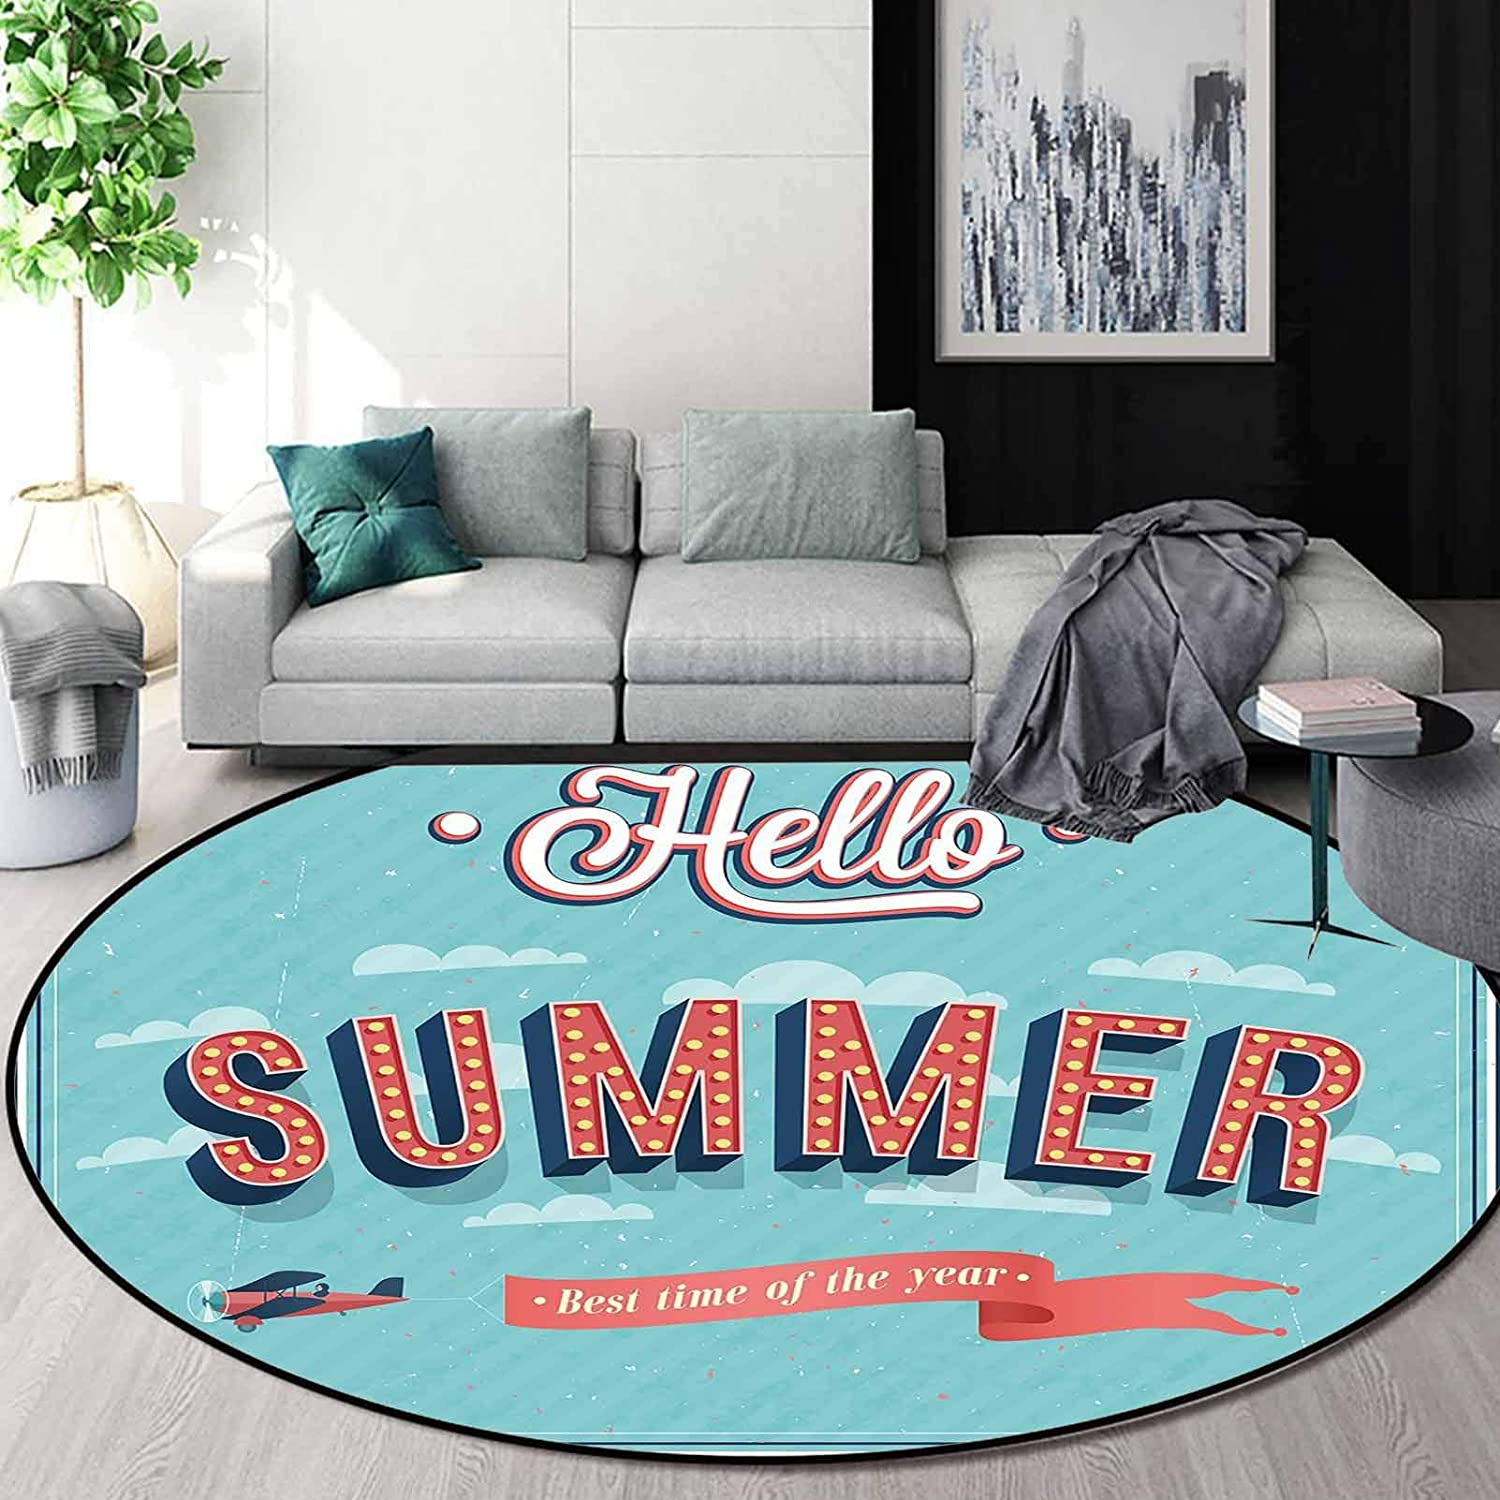 Hello Round Bedroom Area Rugs Carpet 4.6 ft,Vintage Style Summer Inspired Quote Print on Blue Background with Aircraft and Clouds,Multicolor